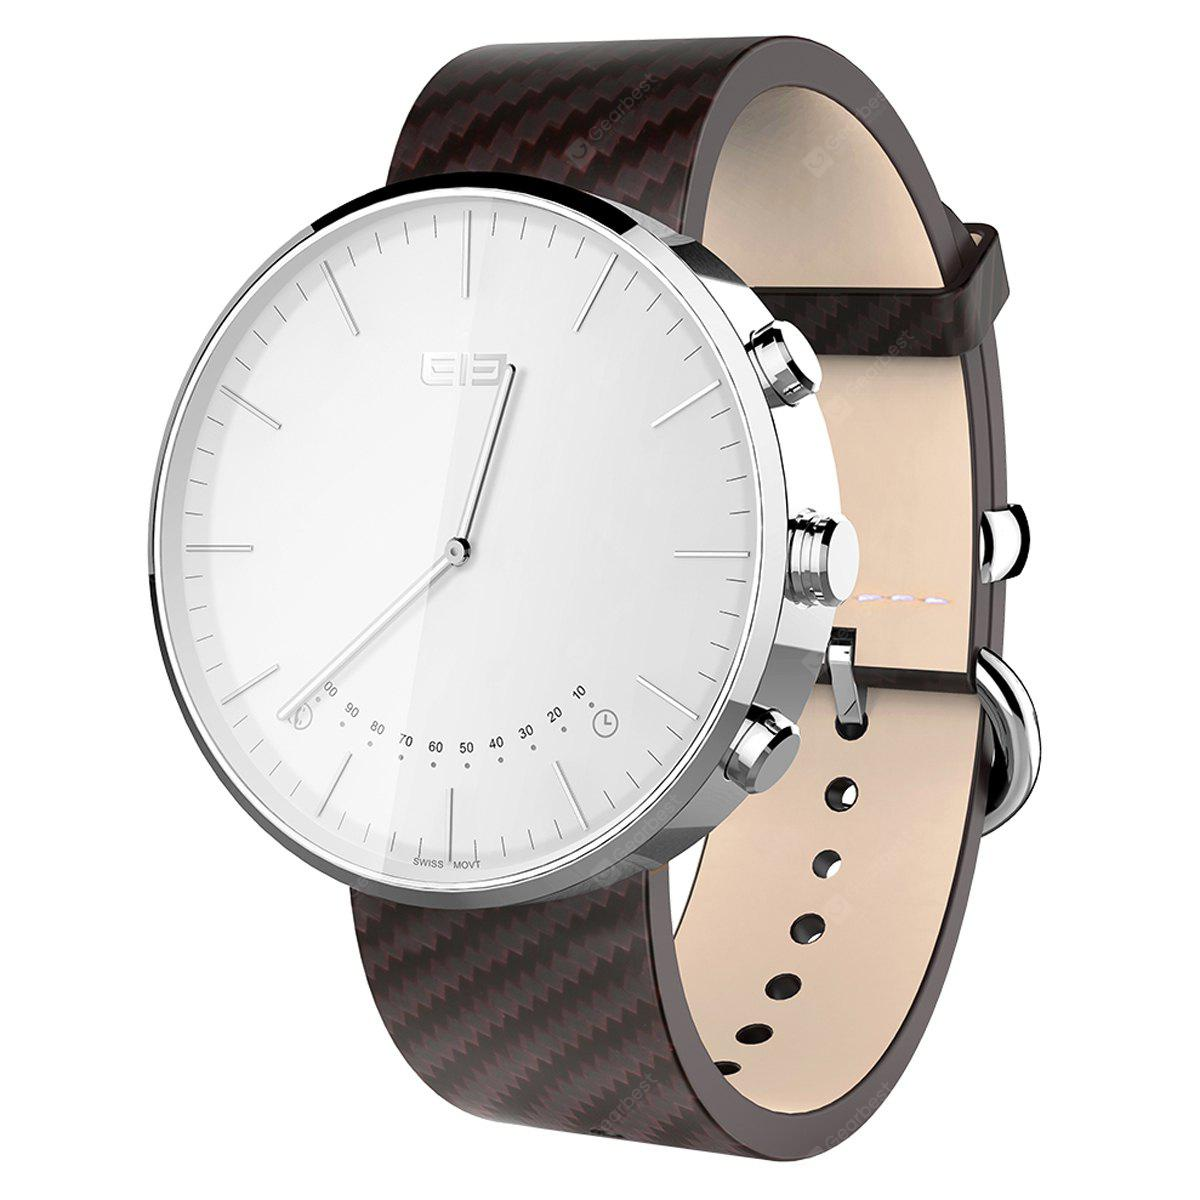 Elephone W2 Smart Bluetooth Watch Classic Smartwatch - SILVER AND BROWN